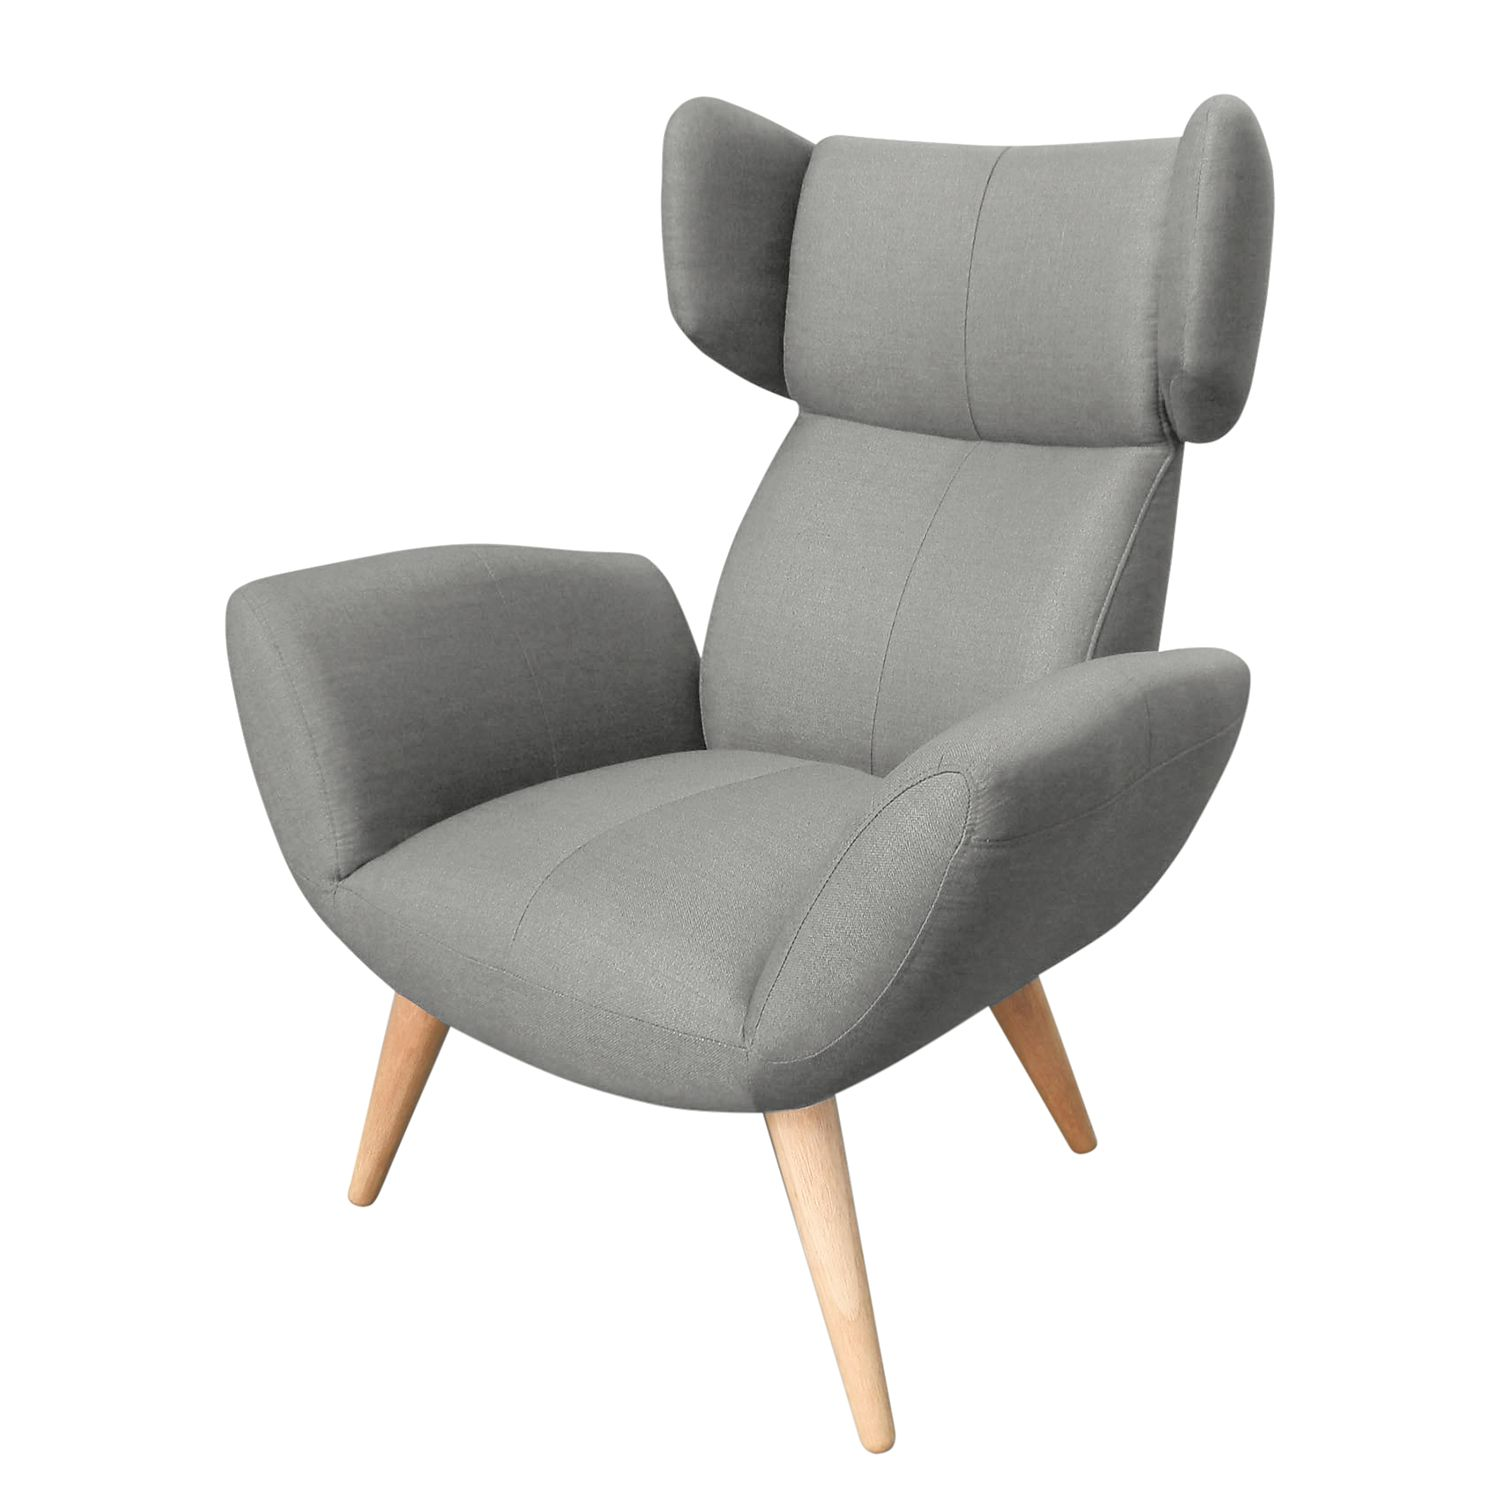 fauteuil oreilles tanacross tissu gris morteens par morteens chez home24 fr. Black Bedroom Furniture Sets. Home Design Ideas